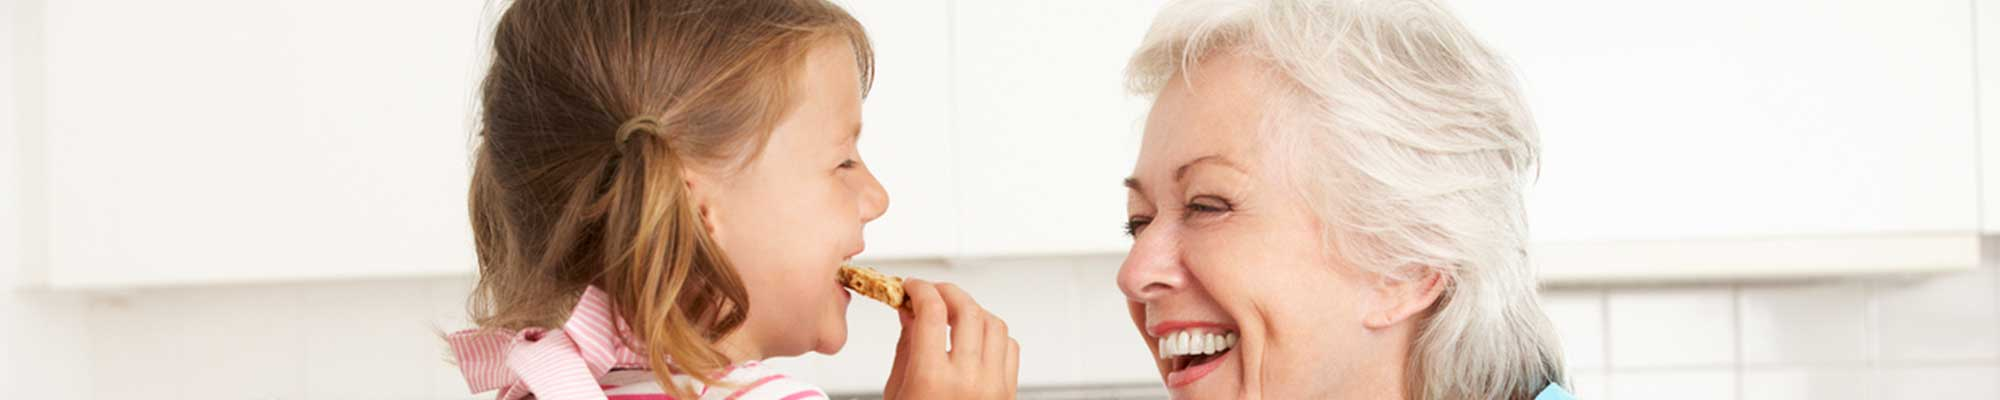 Happy, Smiling Aging Woman Baking Cookies with a Little Girl